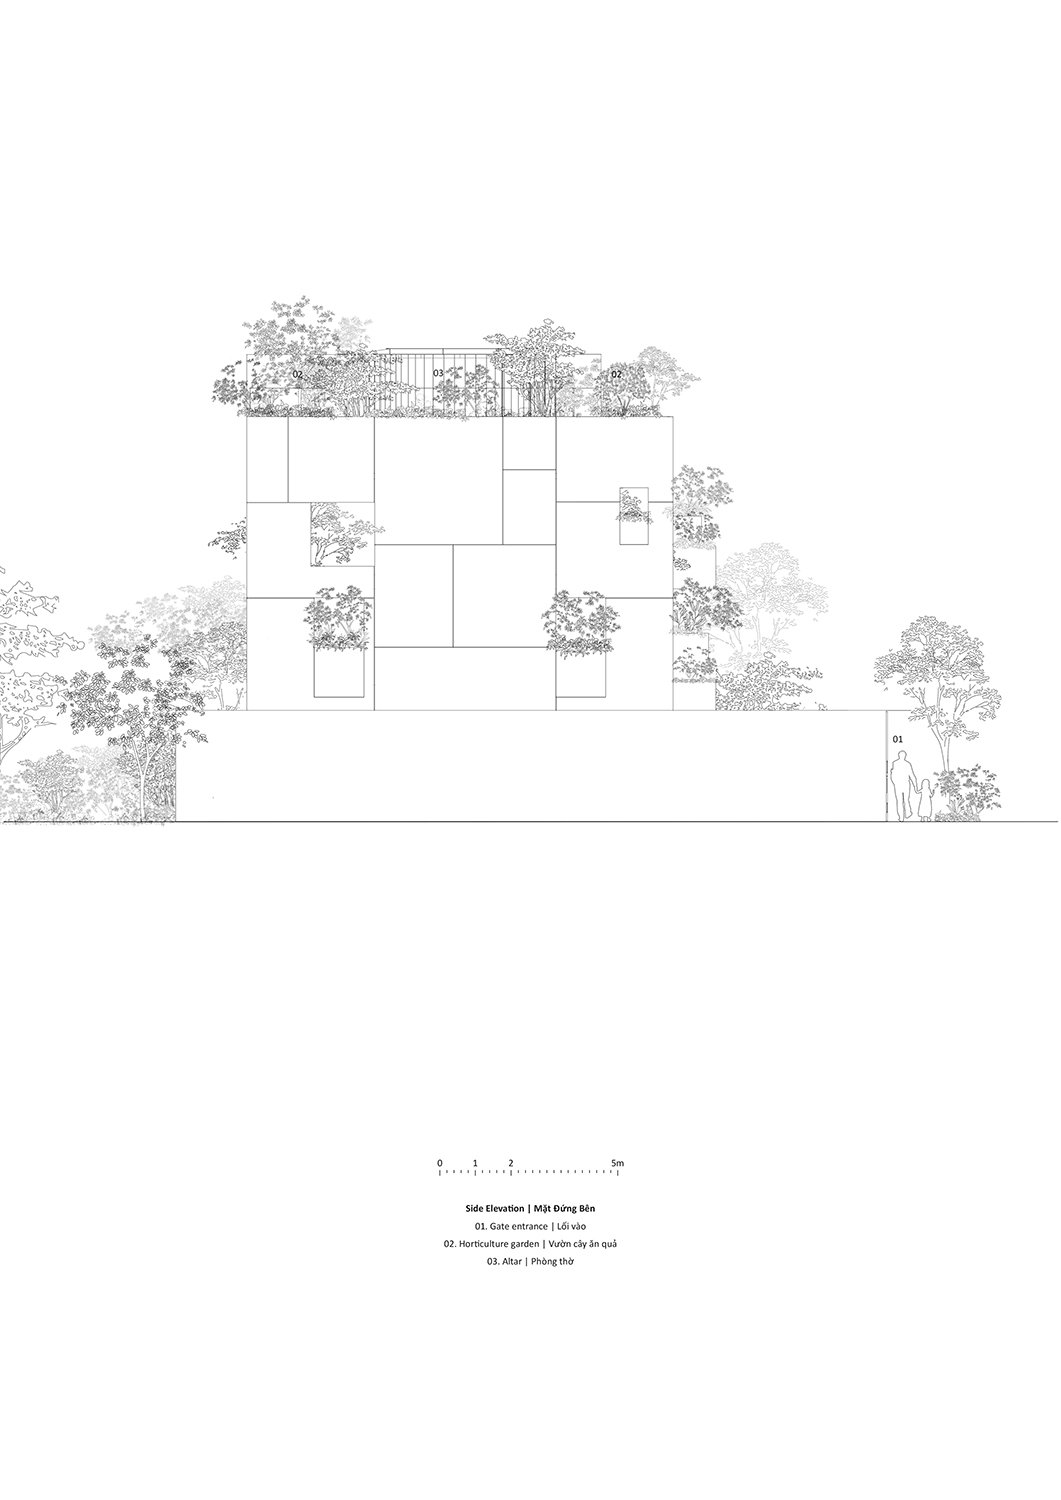 Side elevation Le Thanh Thuong}